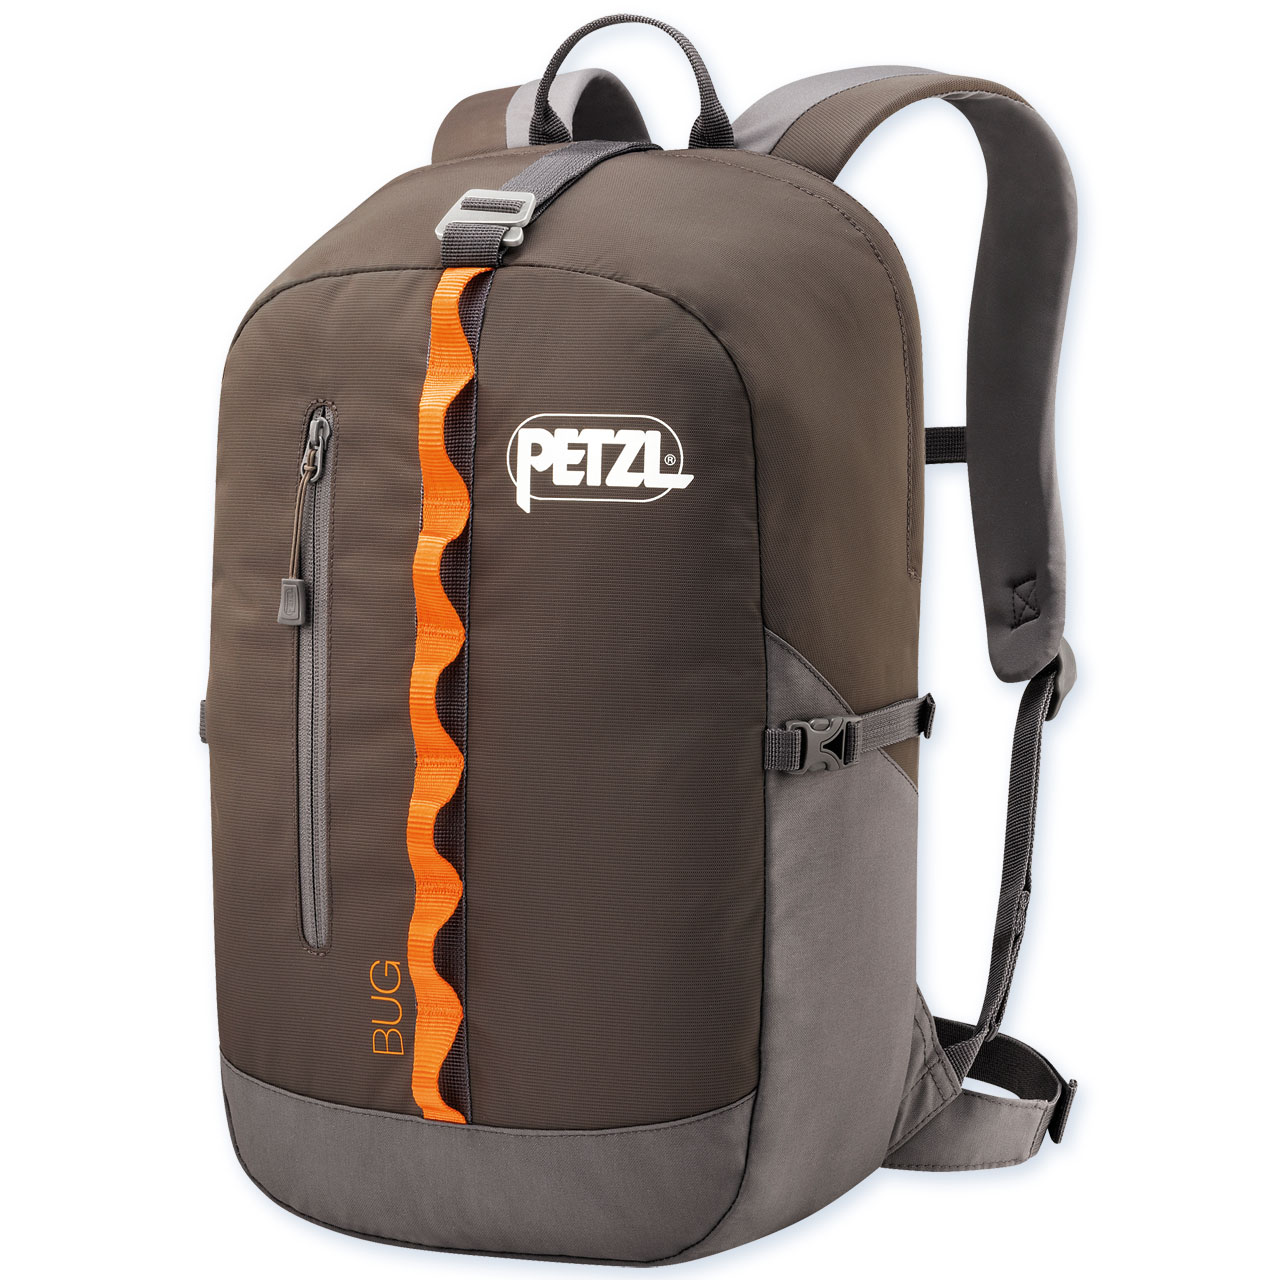 BUG Backpack by Petzl